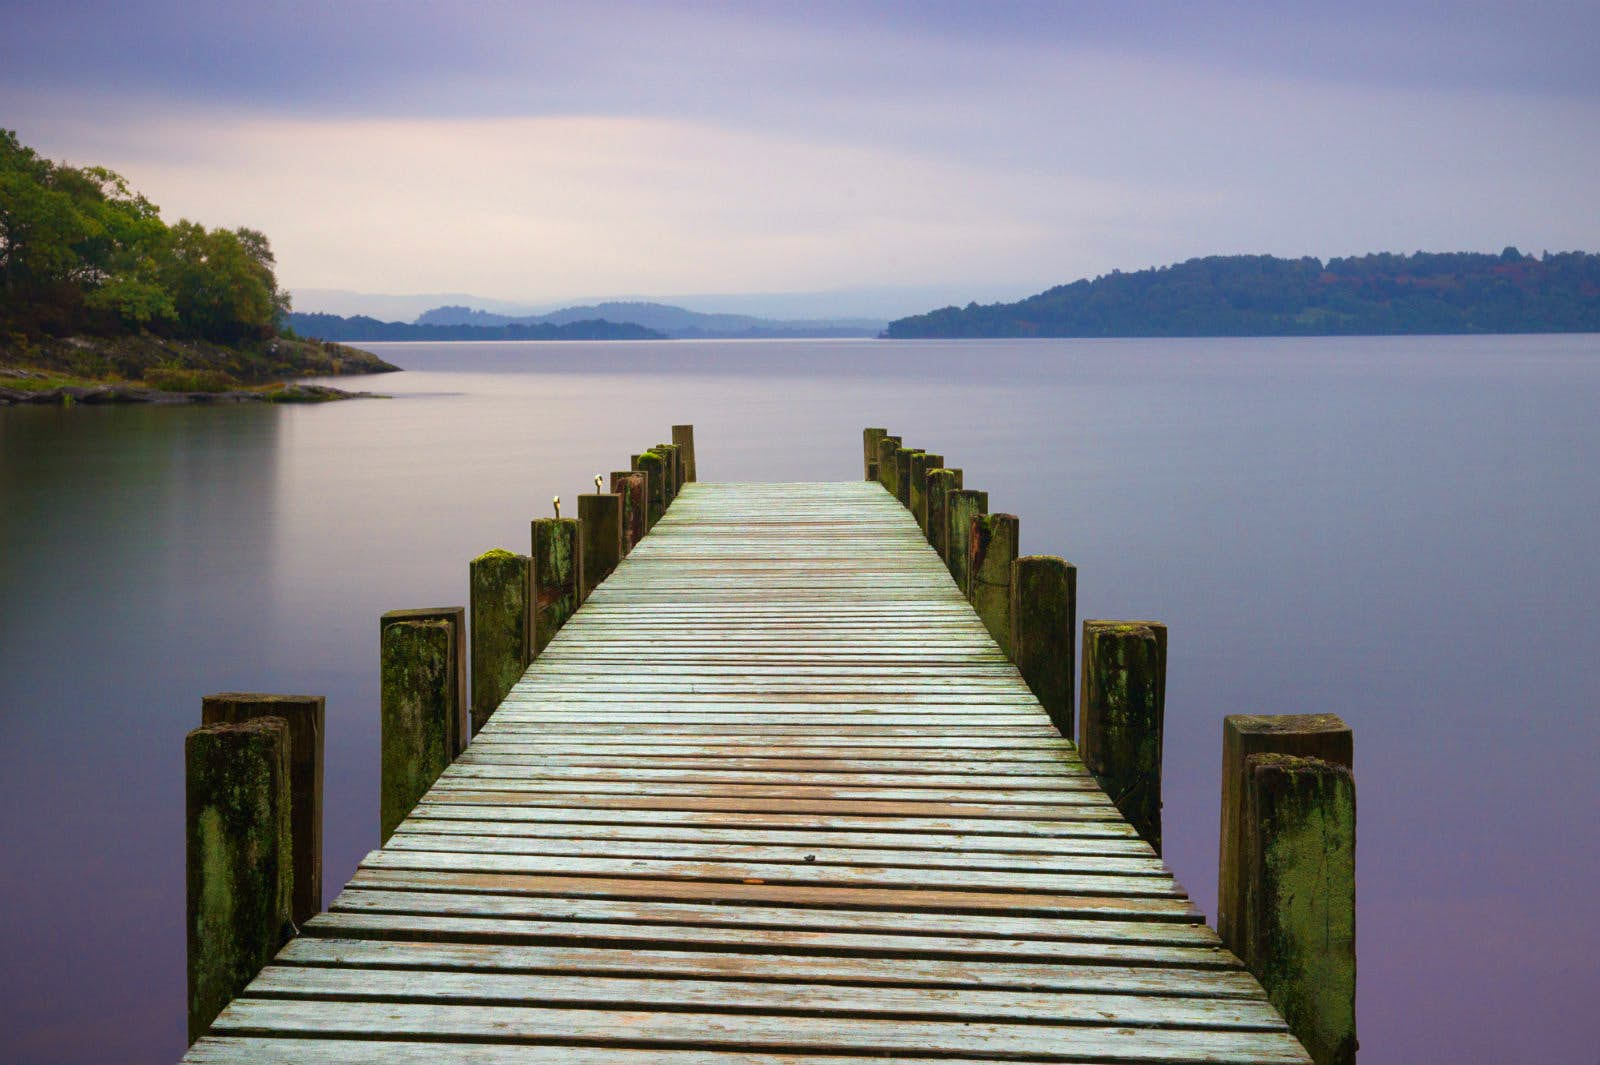 Are you wild enough to swim in Loch Lomond? © Spencer Bowman / Getty Images